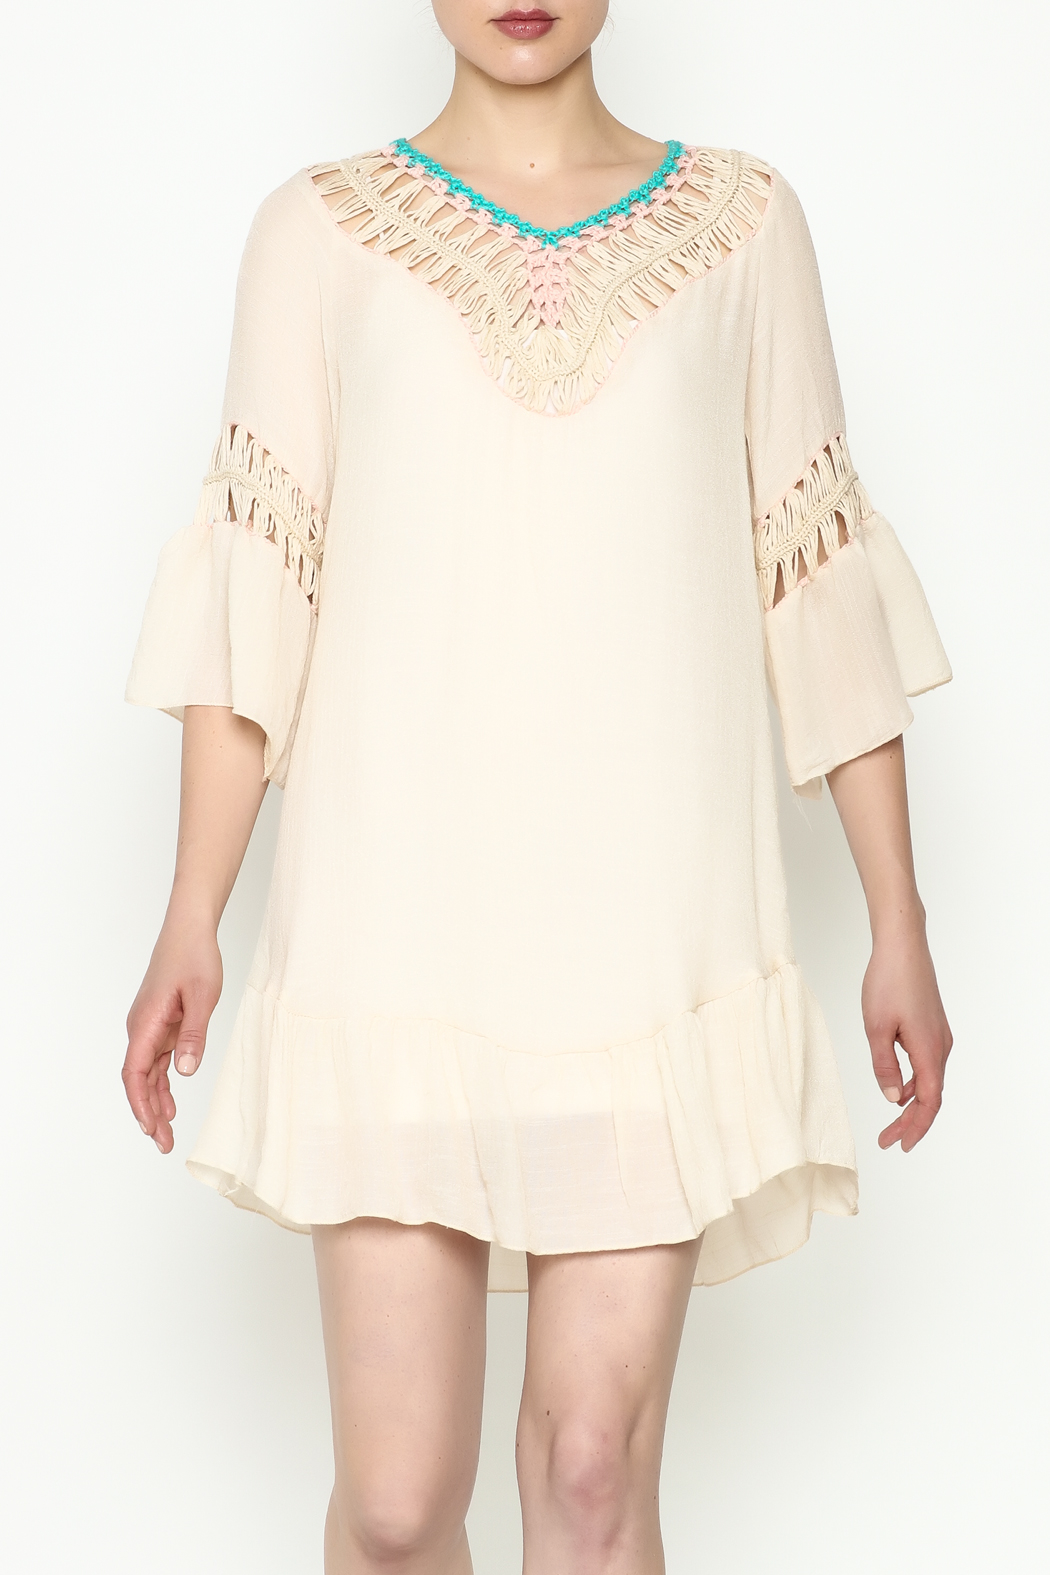 THINK CLOSET Cha Cha Tunic - Main Image